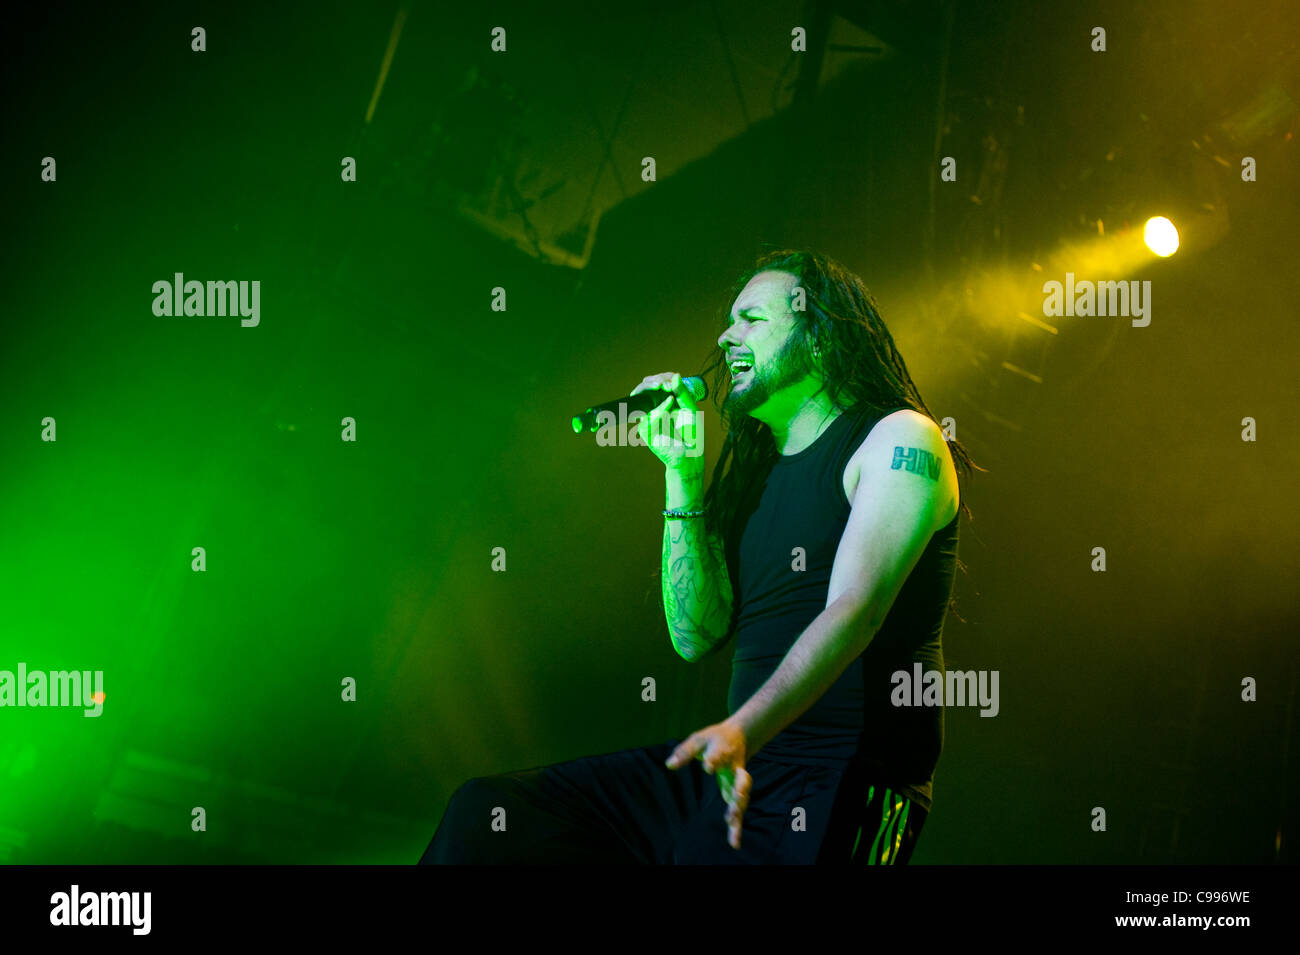 Korn perform on stage at Portland Memorial Coliseum in Portland, Oregon, USA  on the Music As A Weapon Tour on 3/15/2011. - Stock Image